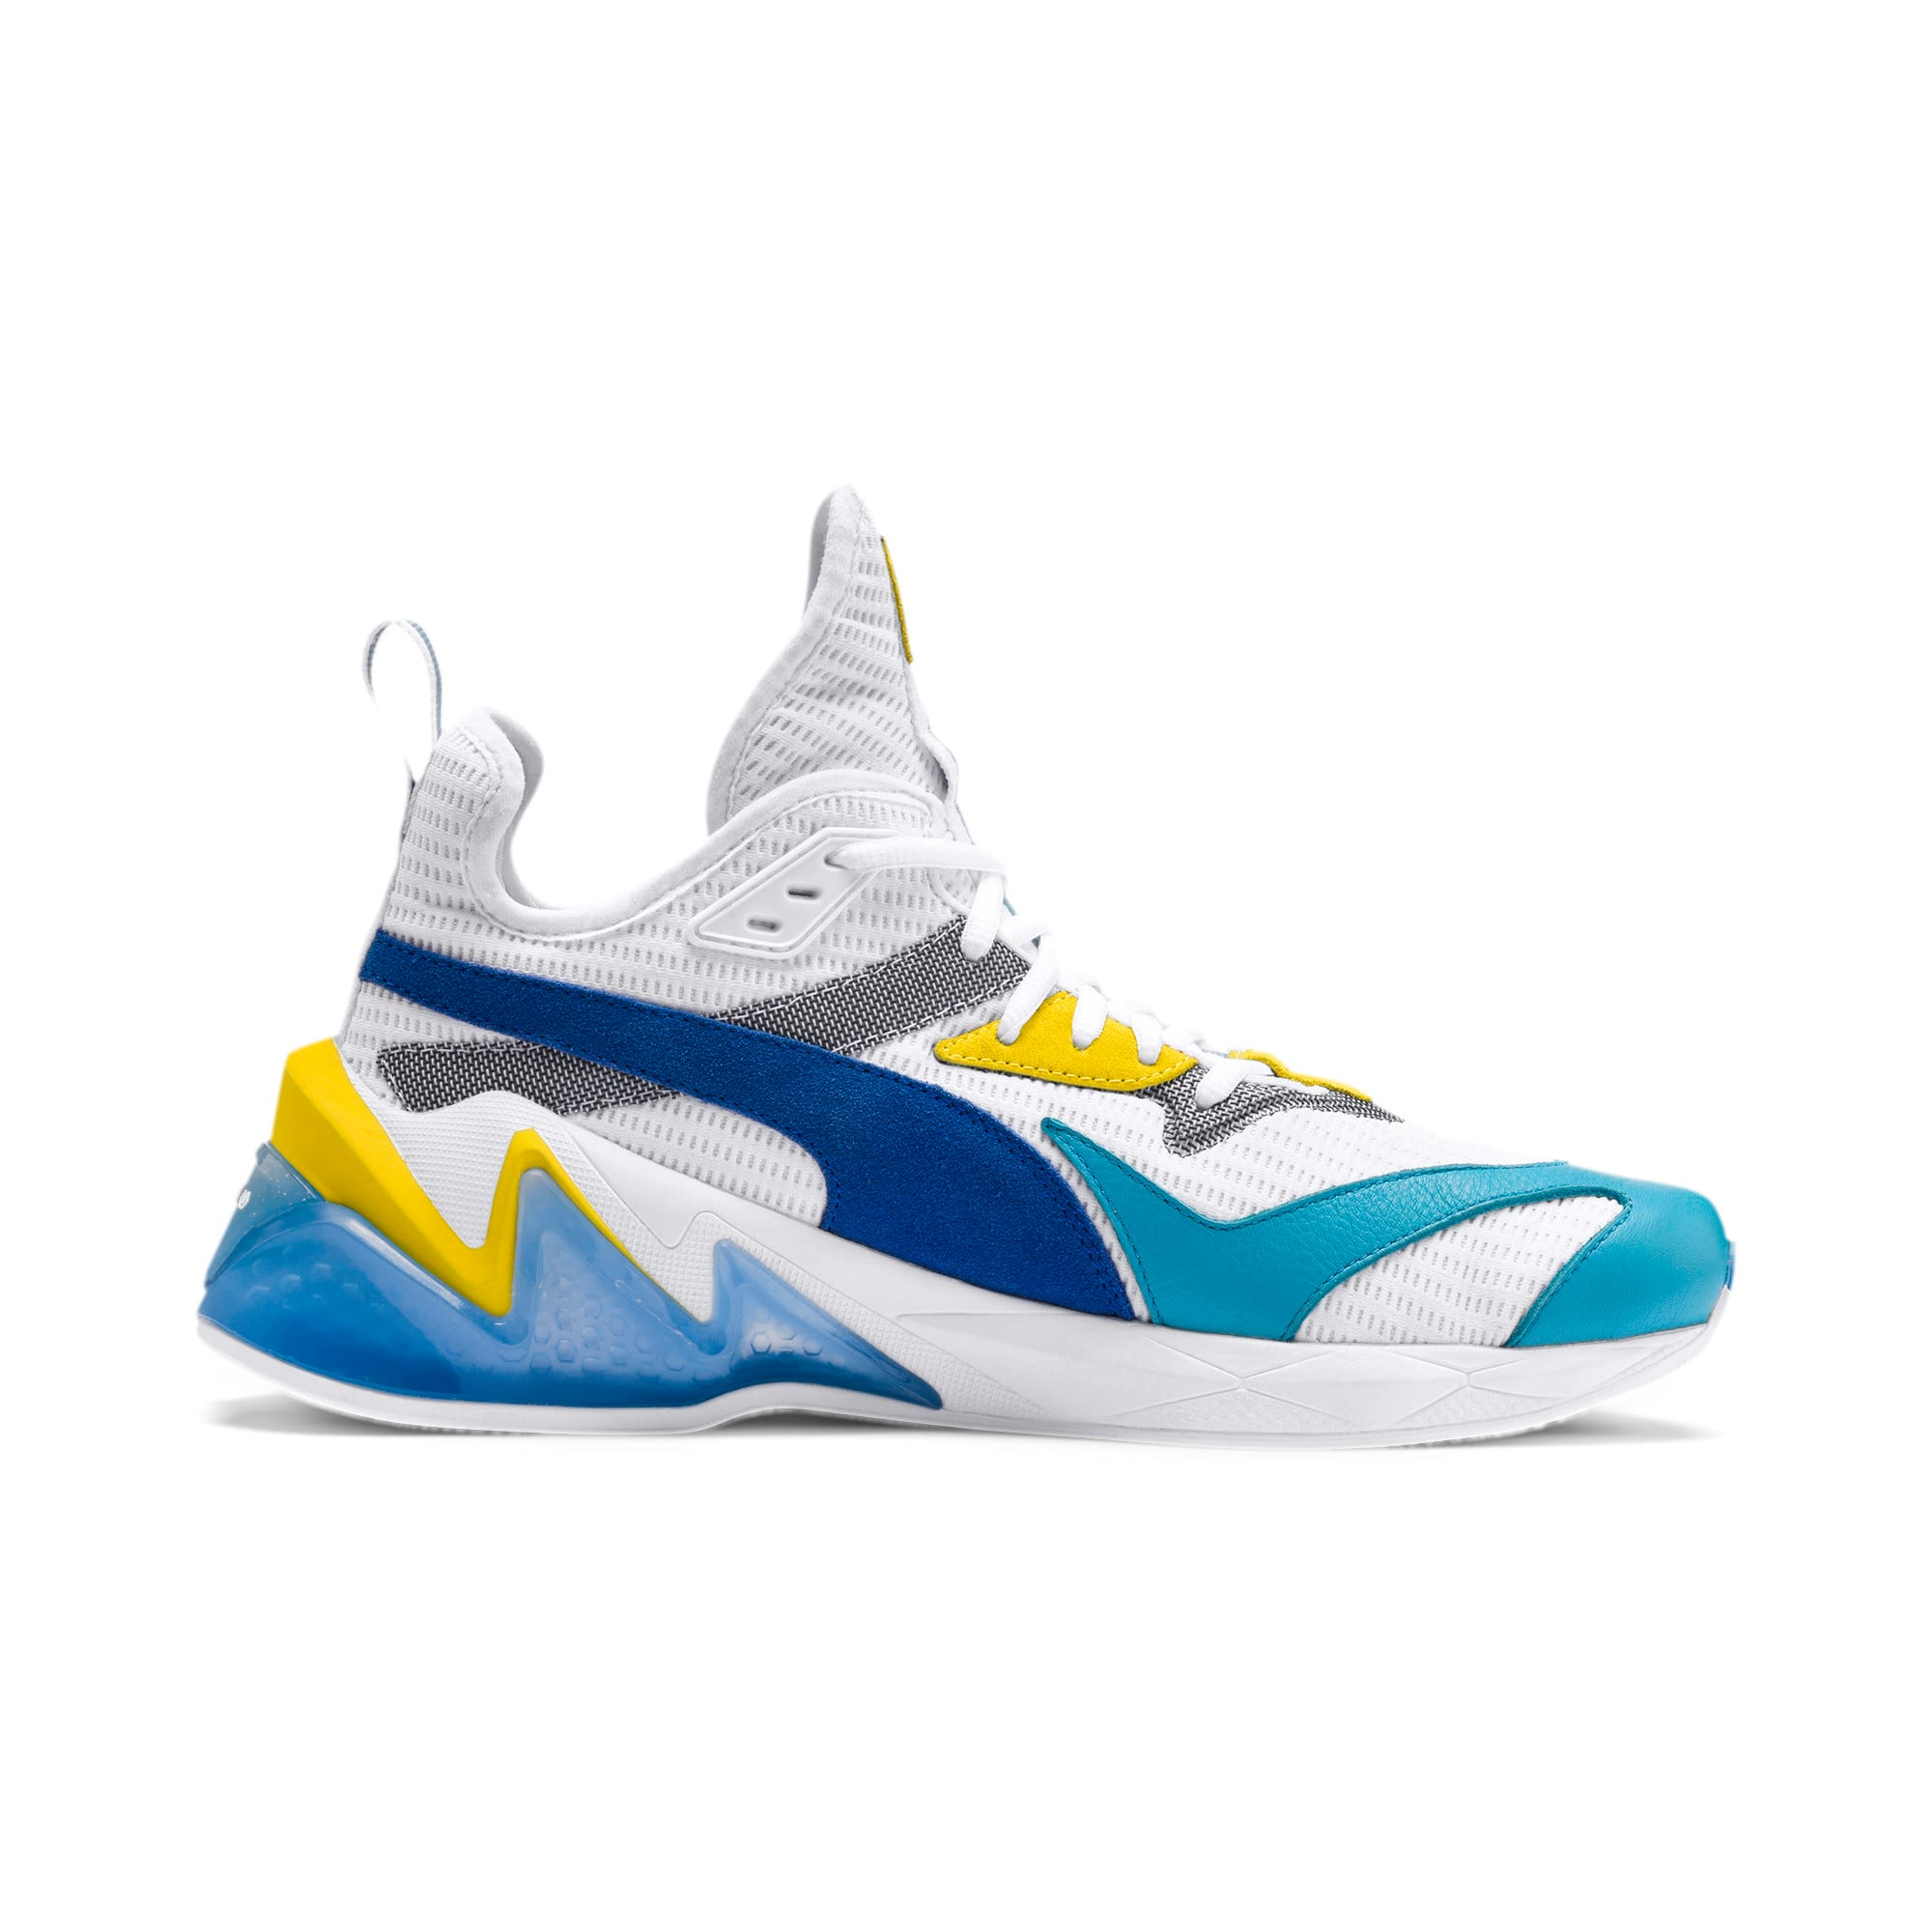 Thumbnail 5 of LQDCELL Origin Men's Shoes, Puma White-B Blue-Blz Yellow, medium